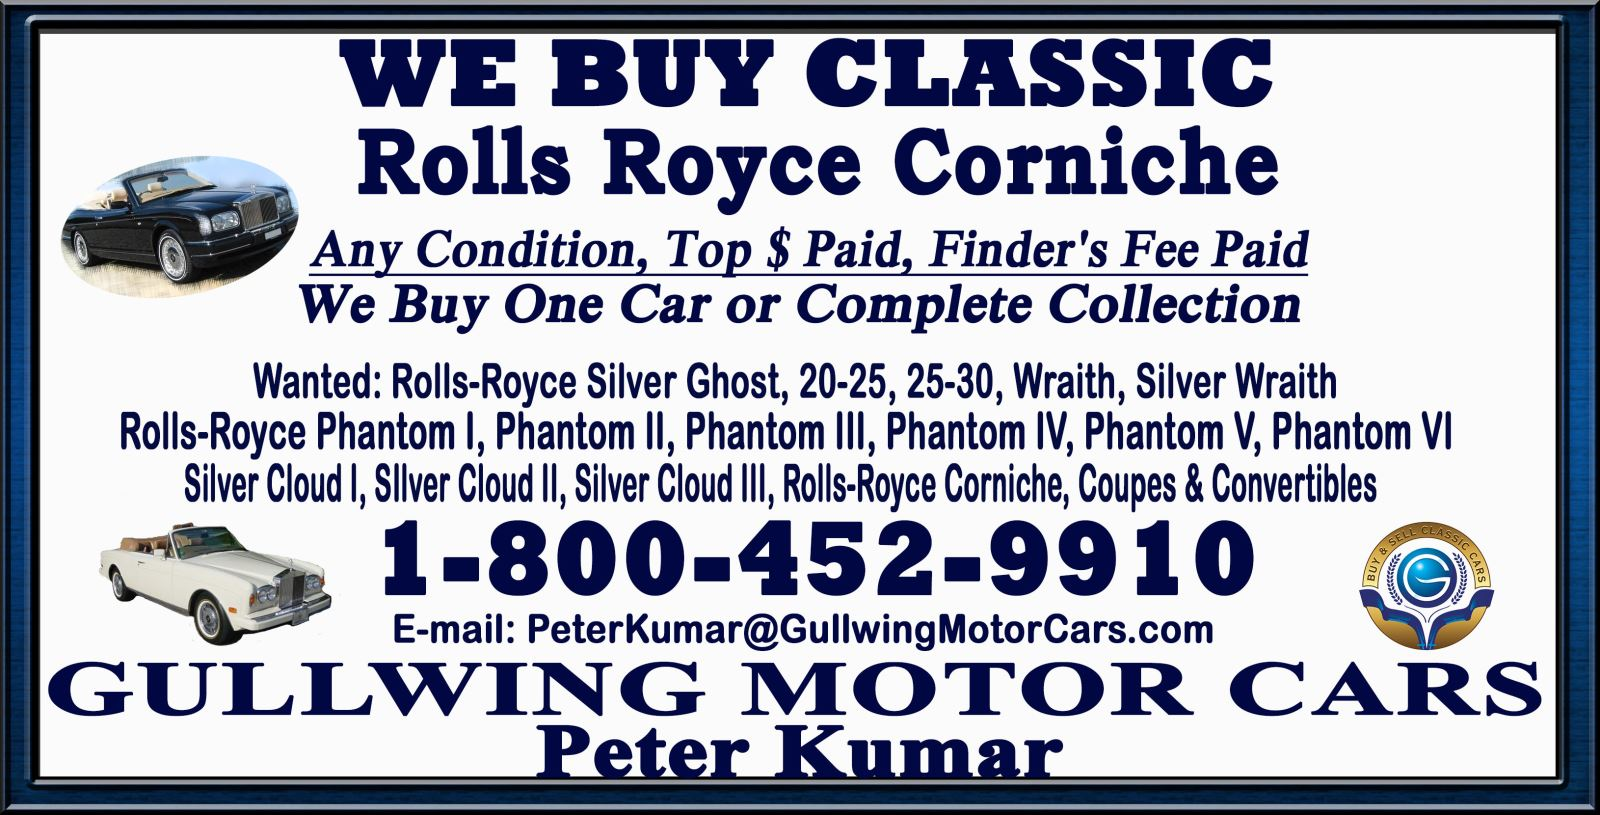 Sell Classic Rolls Royce Corniche | Call Gullwing Motor if Vintage Rolls Royce Corniche For Sale